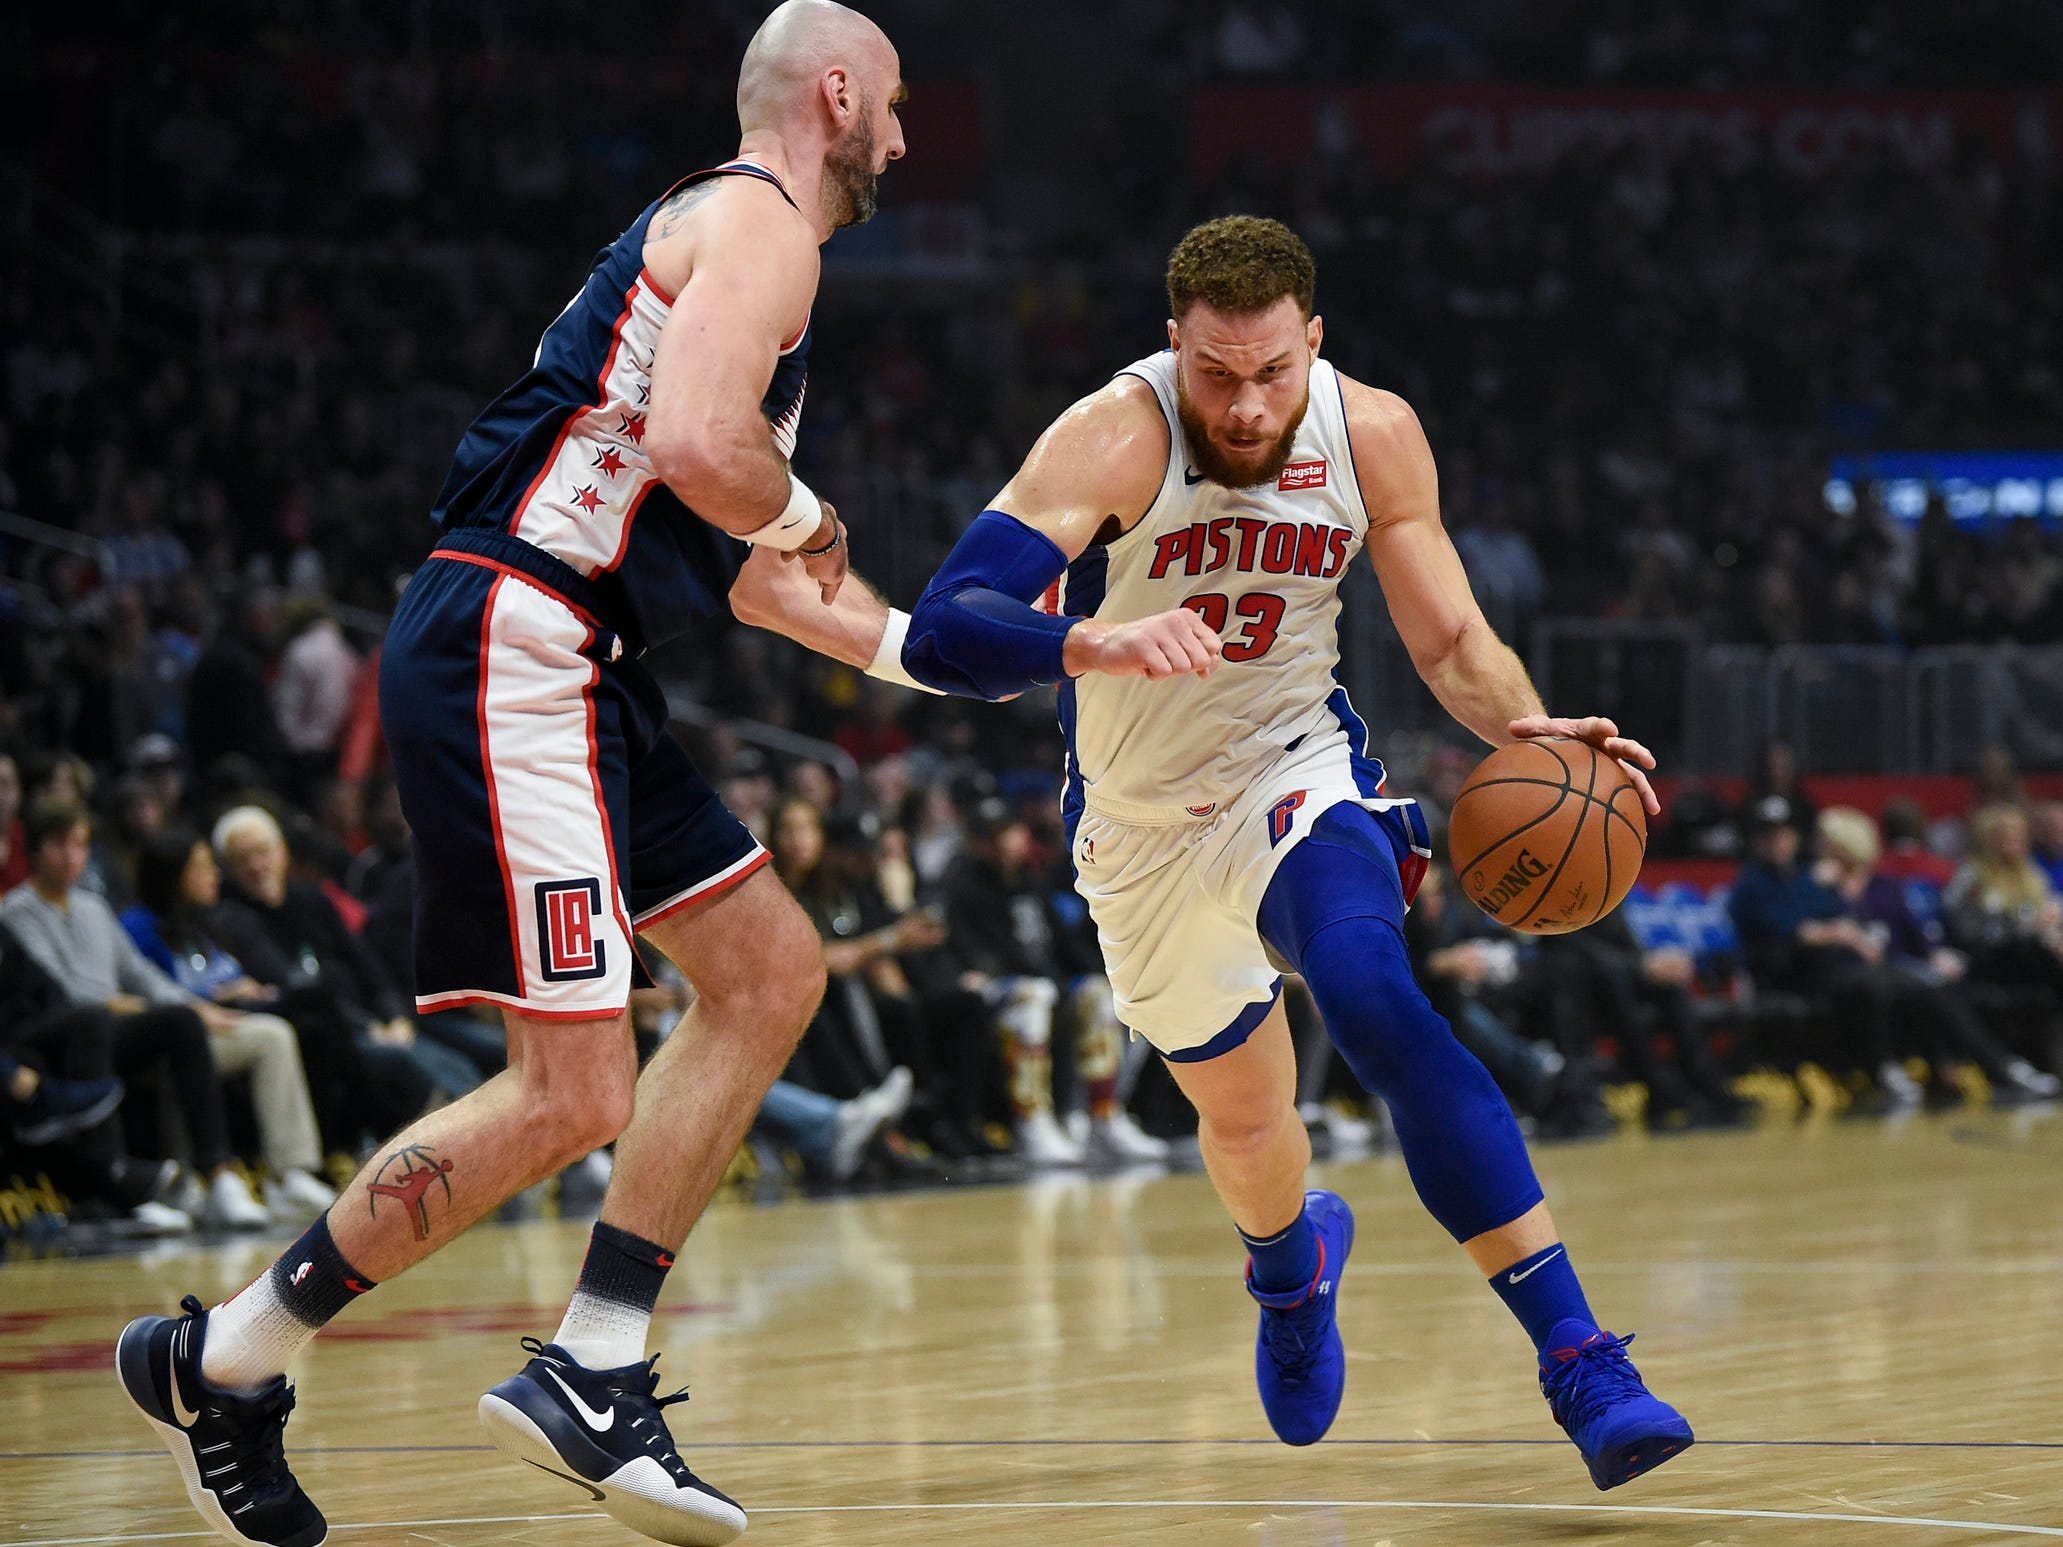 Pistons forward Blake Griffin drives to the basket while Clippers center Marcin Gortat defends during the first quarter on Saturday, Jan. 12, 2019, in Los Angeles.